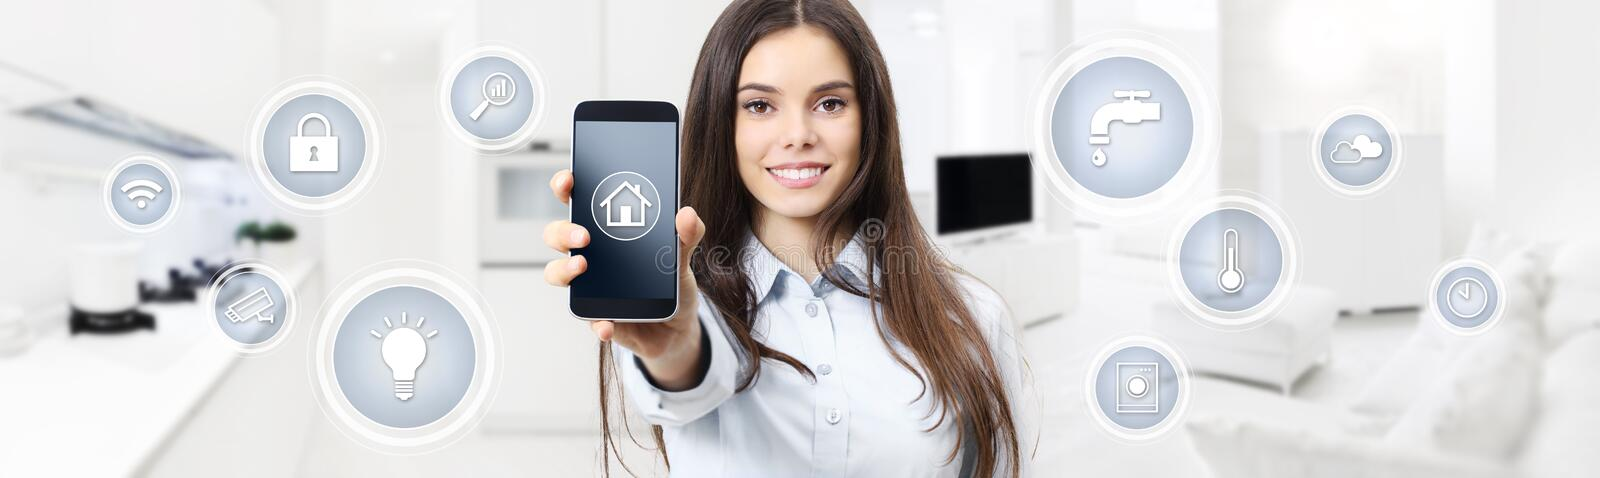 smart home control concept smiling woman showing cell phone screen with symbols on kitchen and living room blurred background stock photos